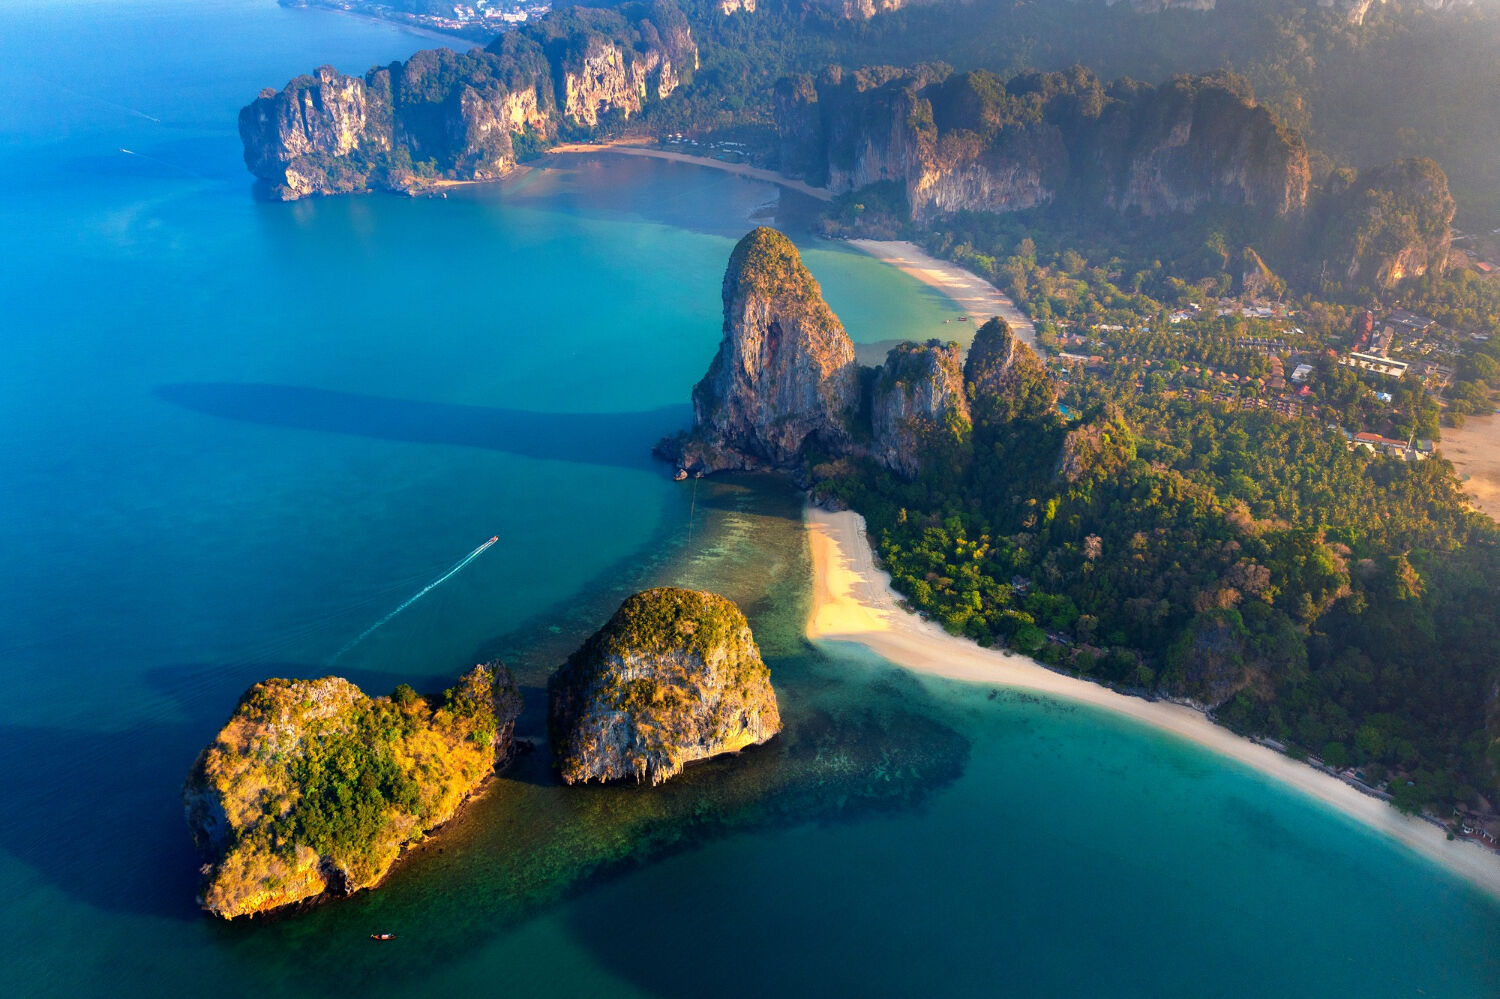 PHOTO: Aerial view of Railay in Krabi by tawatchai07 from freepik.